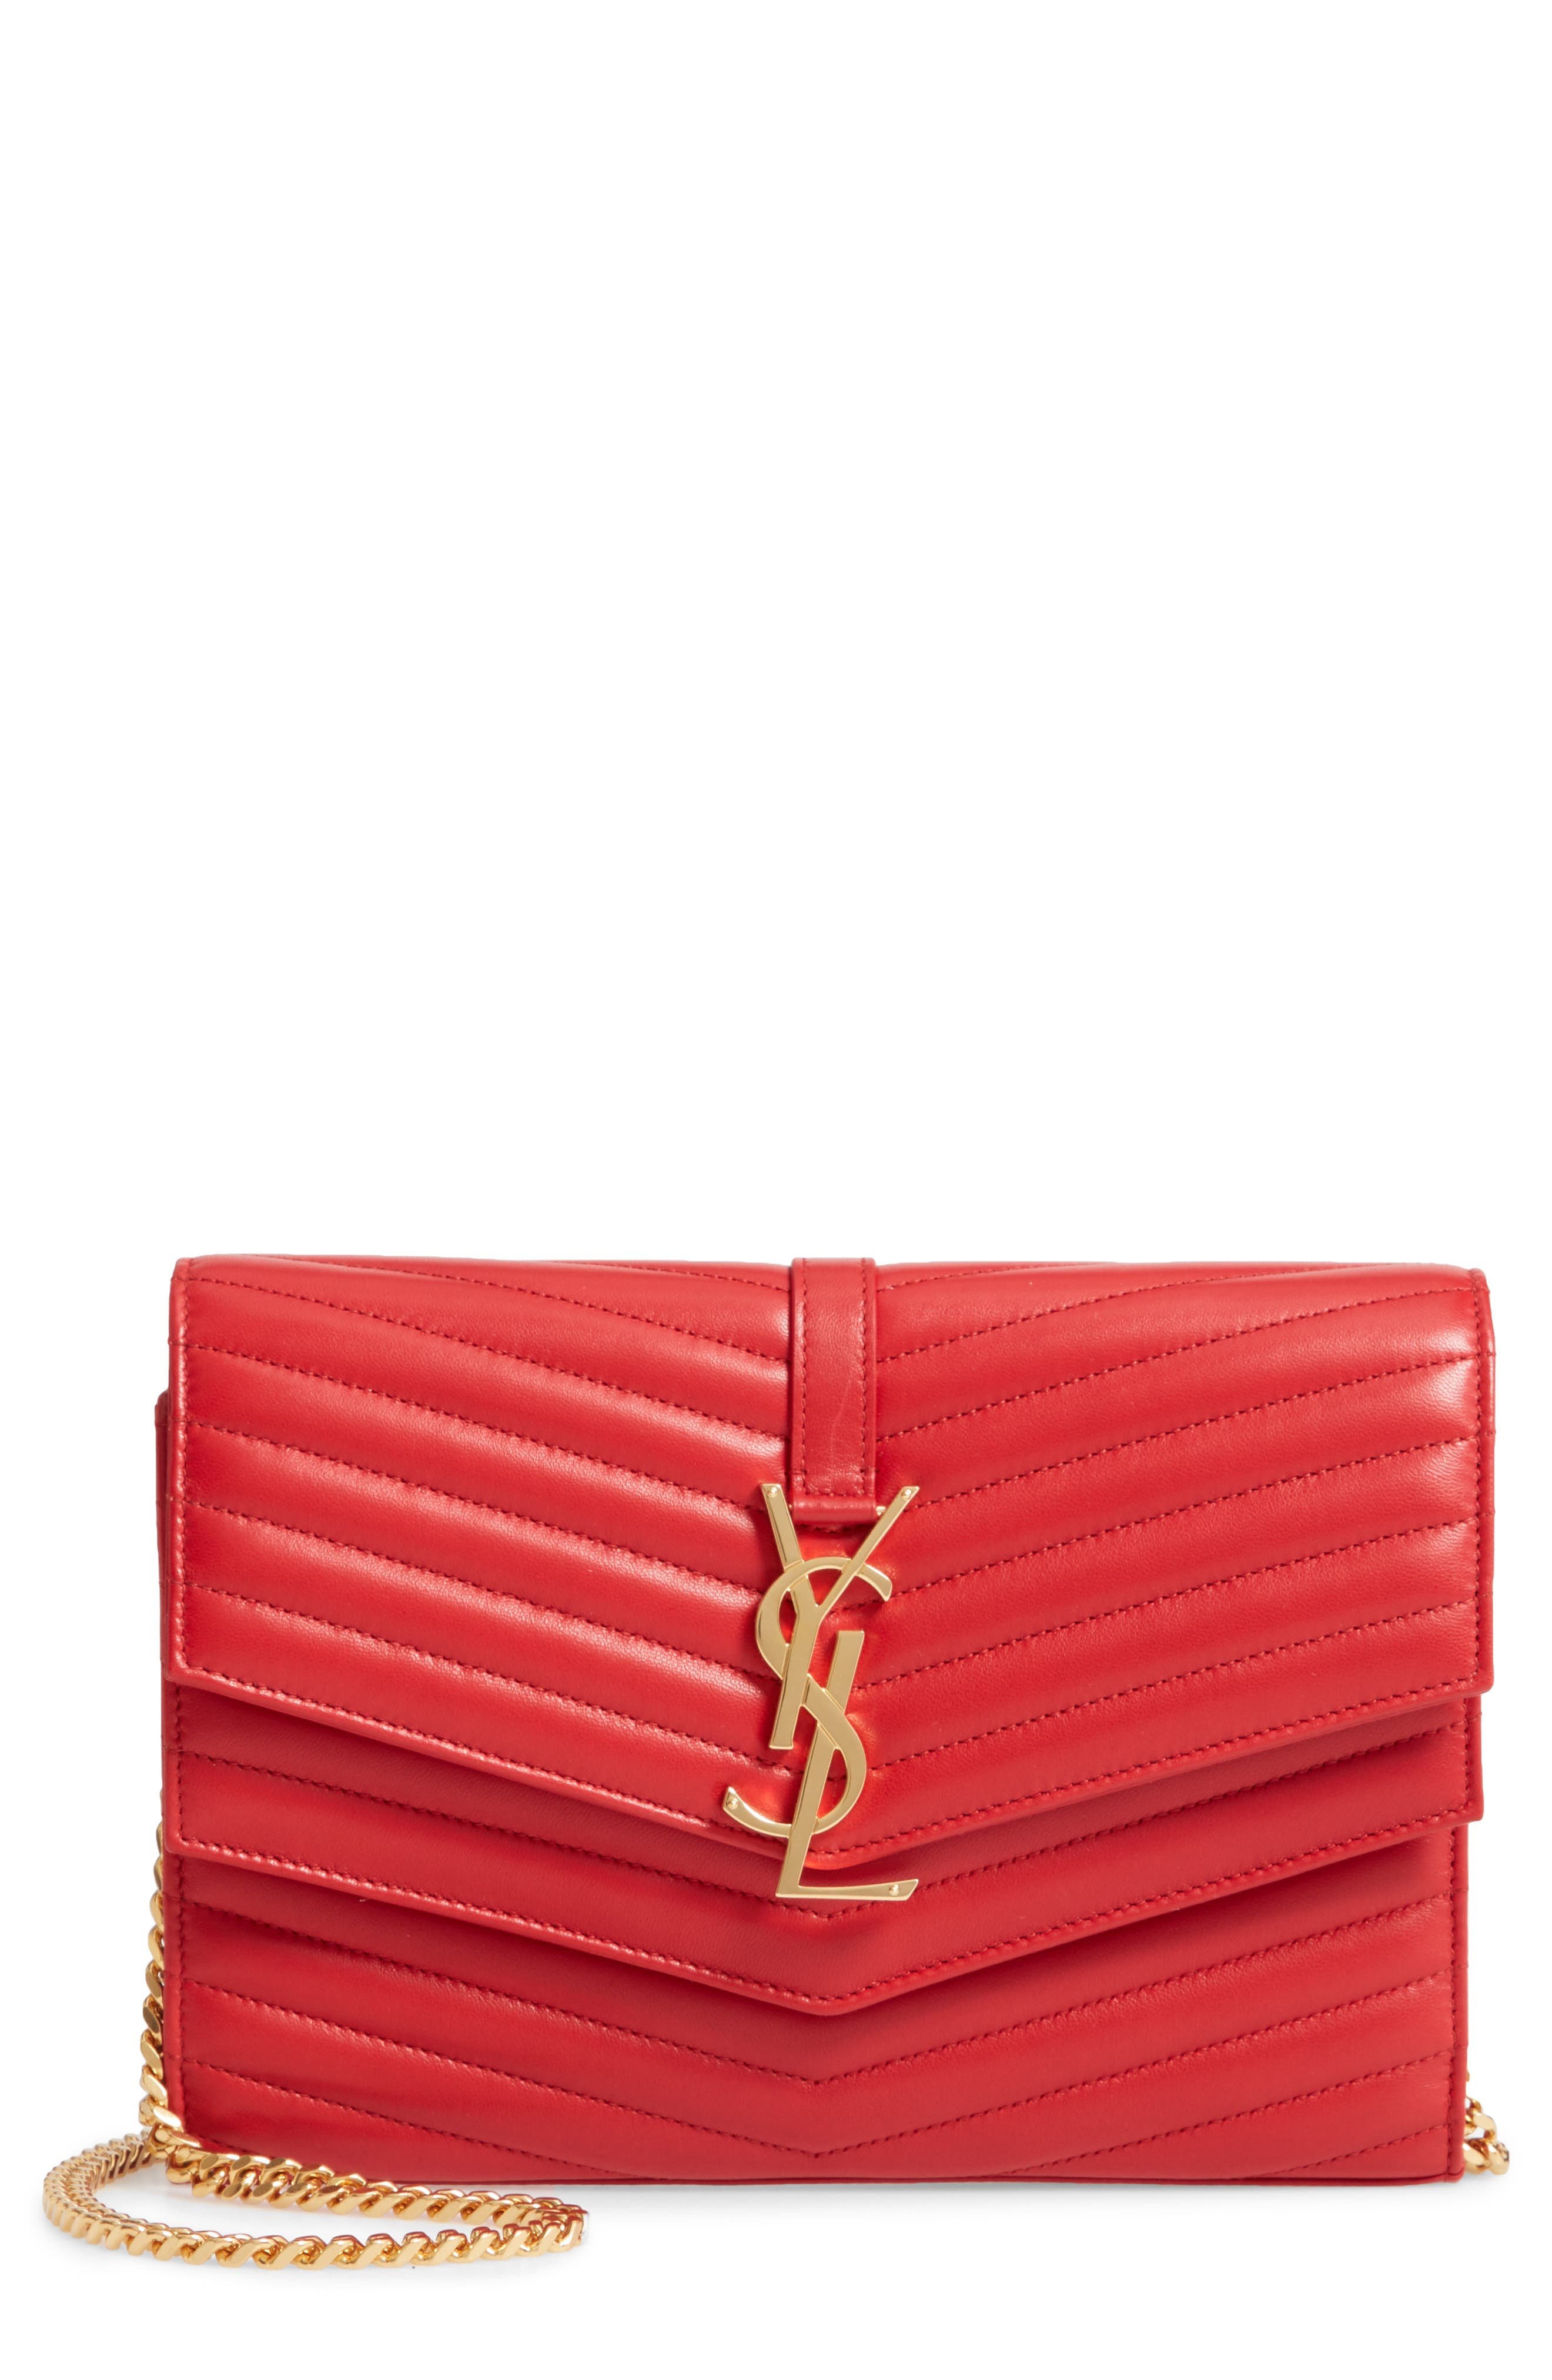 SAINT LAURENT, Sulpice Leather Crossbody Wallet, Main thumbnail 1, color, BANDANA RED